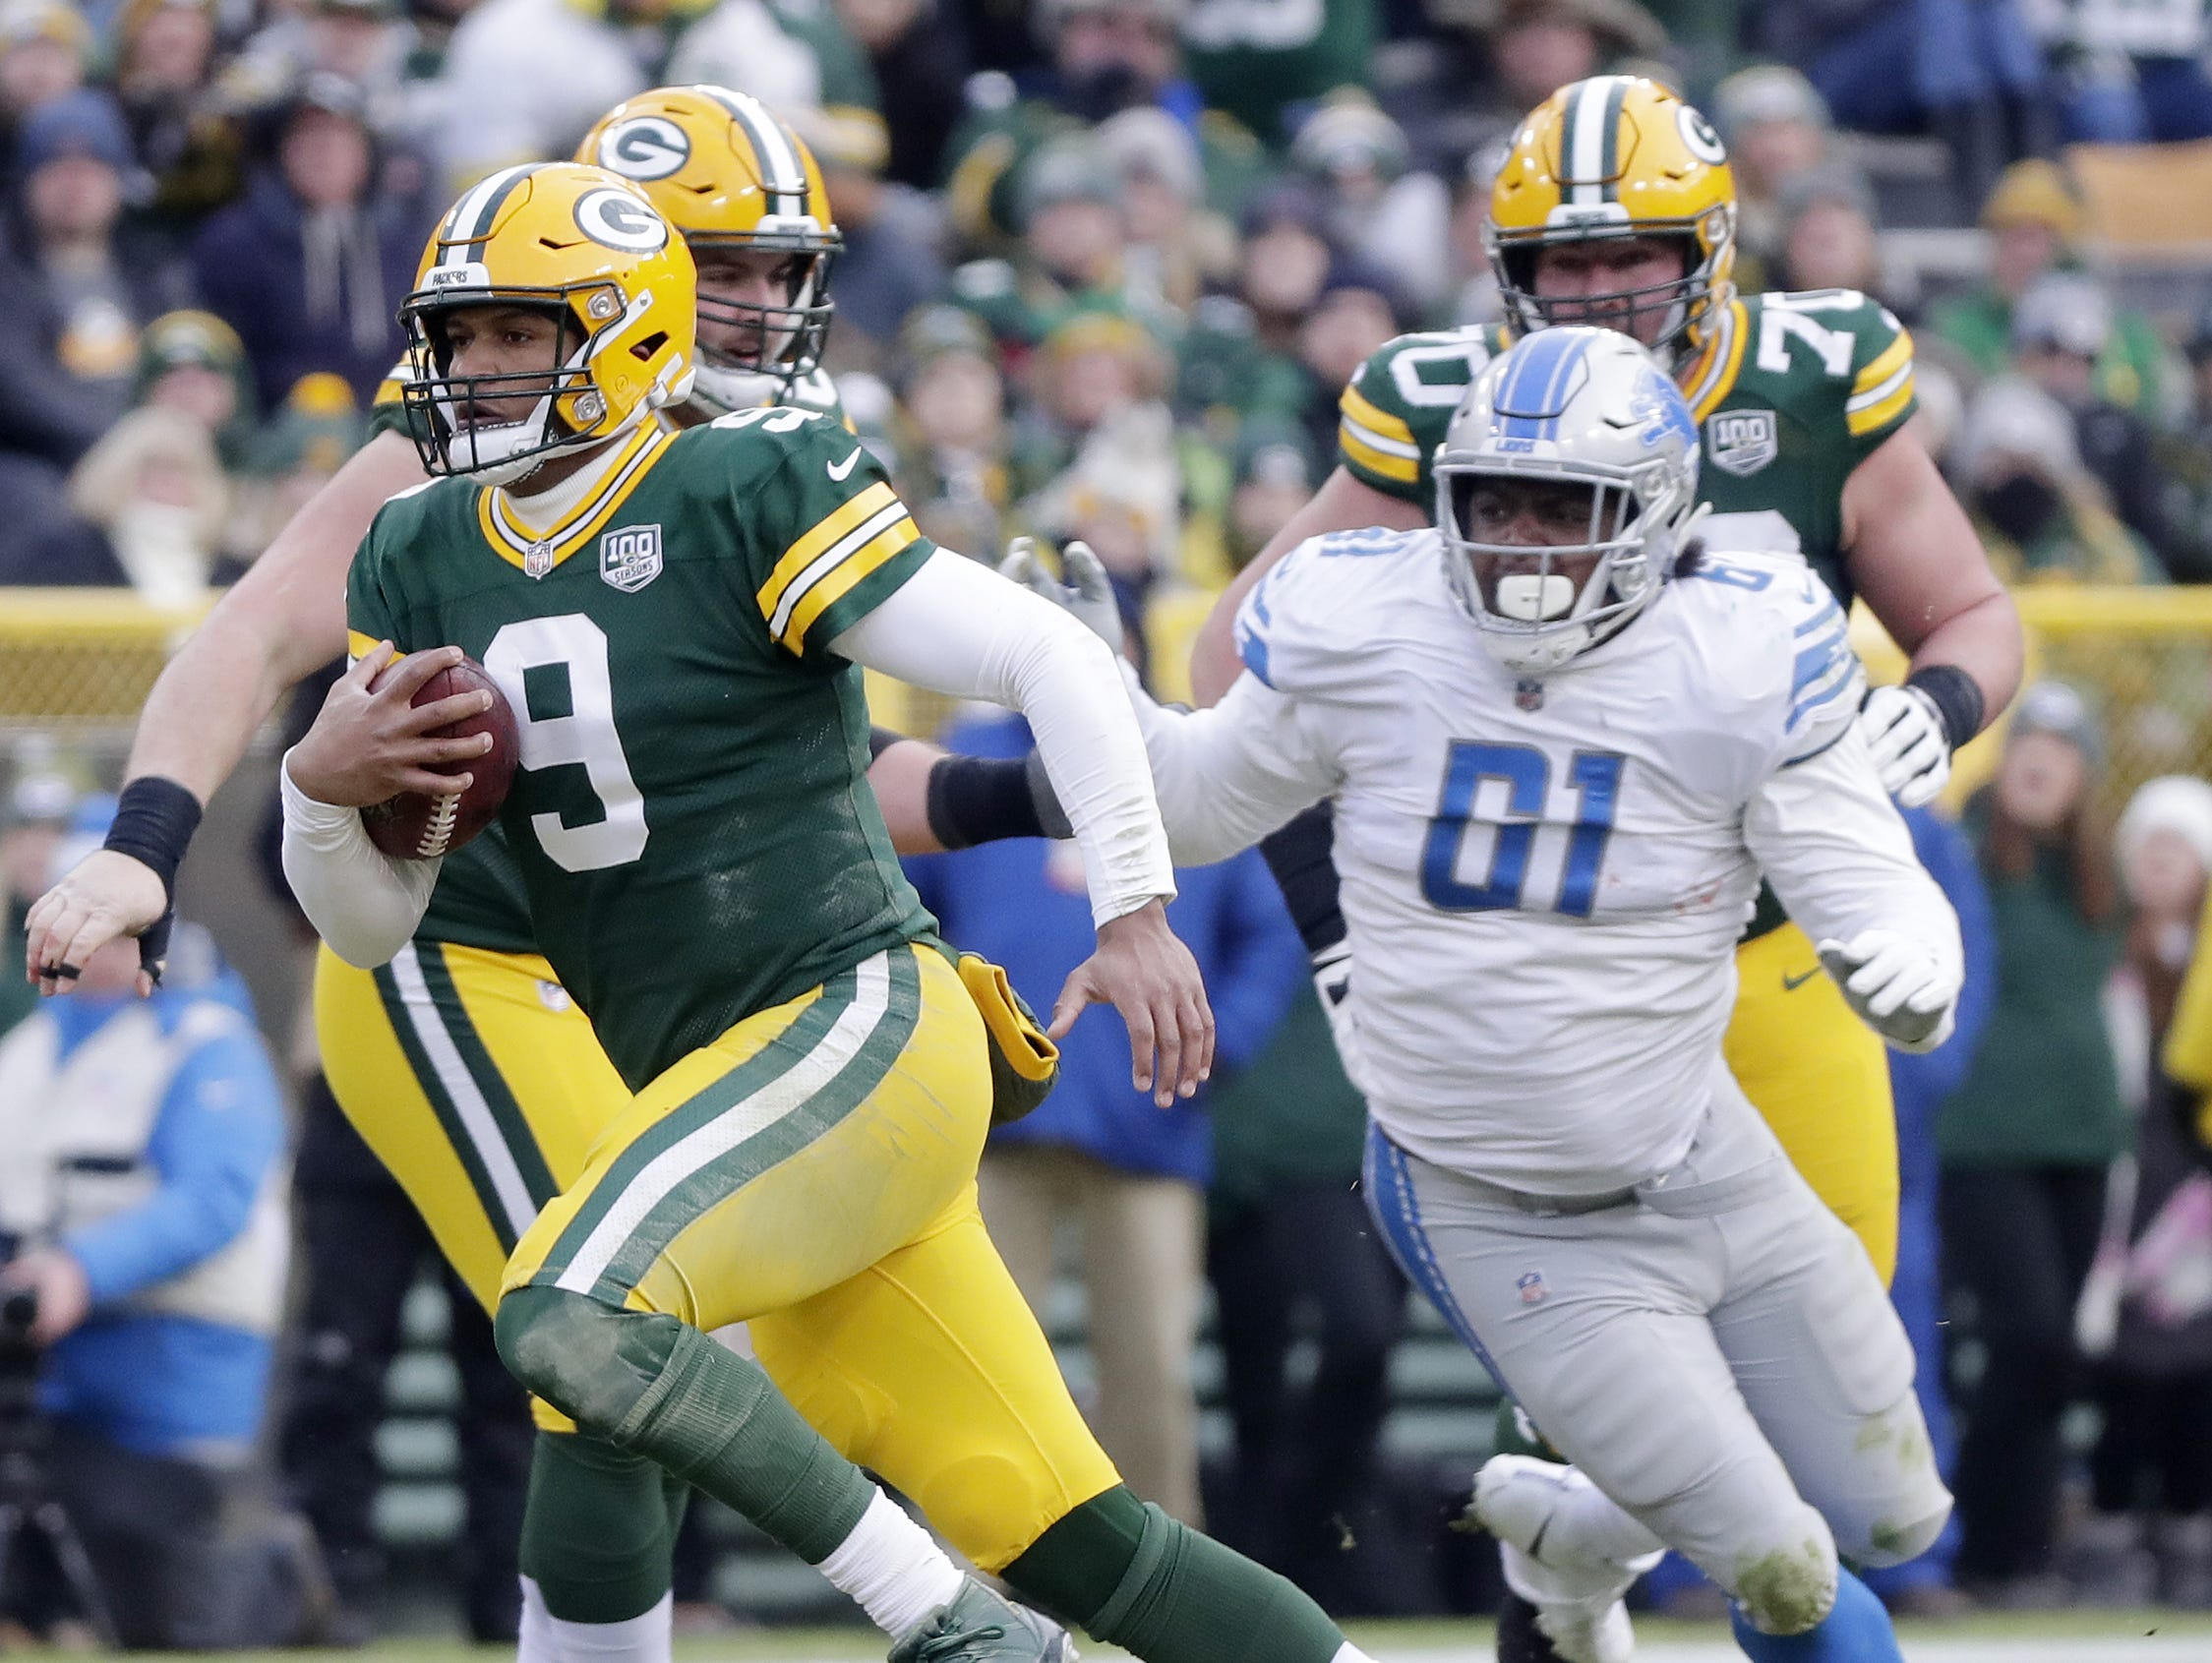 Green Bay Packers quarterback DeShone Kizer (9) scrambles for a first down against the Detroit Lions in the fourth quarter at Lambeau Field on Sunday, December 30, 2018 in Green Bay, Wis. Adam Wesley/USA TODAY NETWORK-Wis